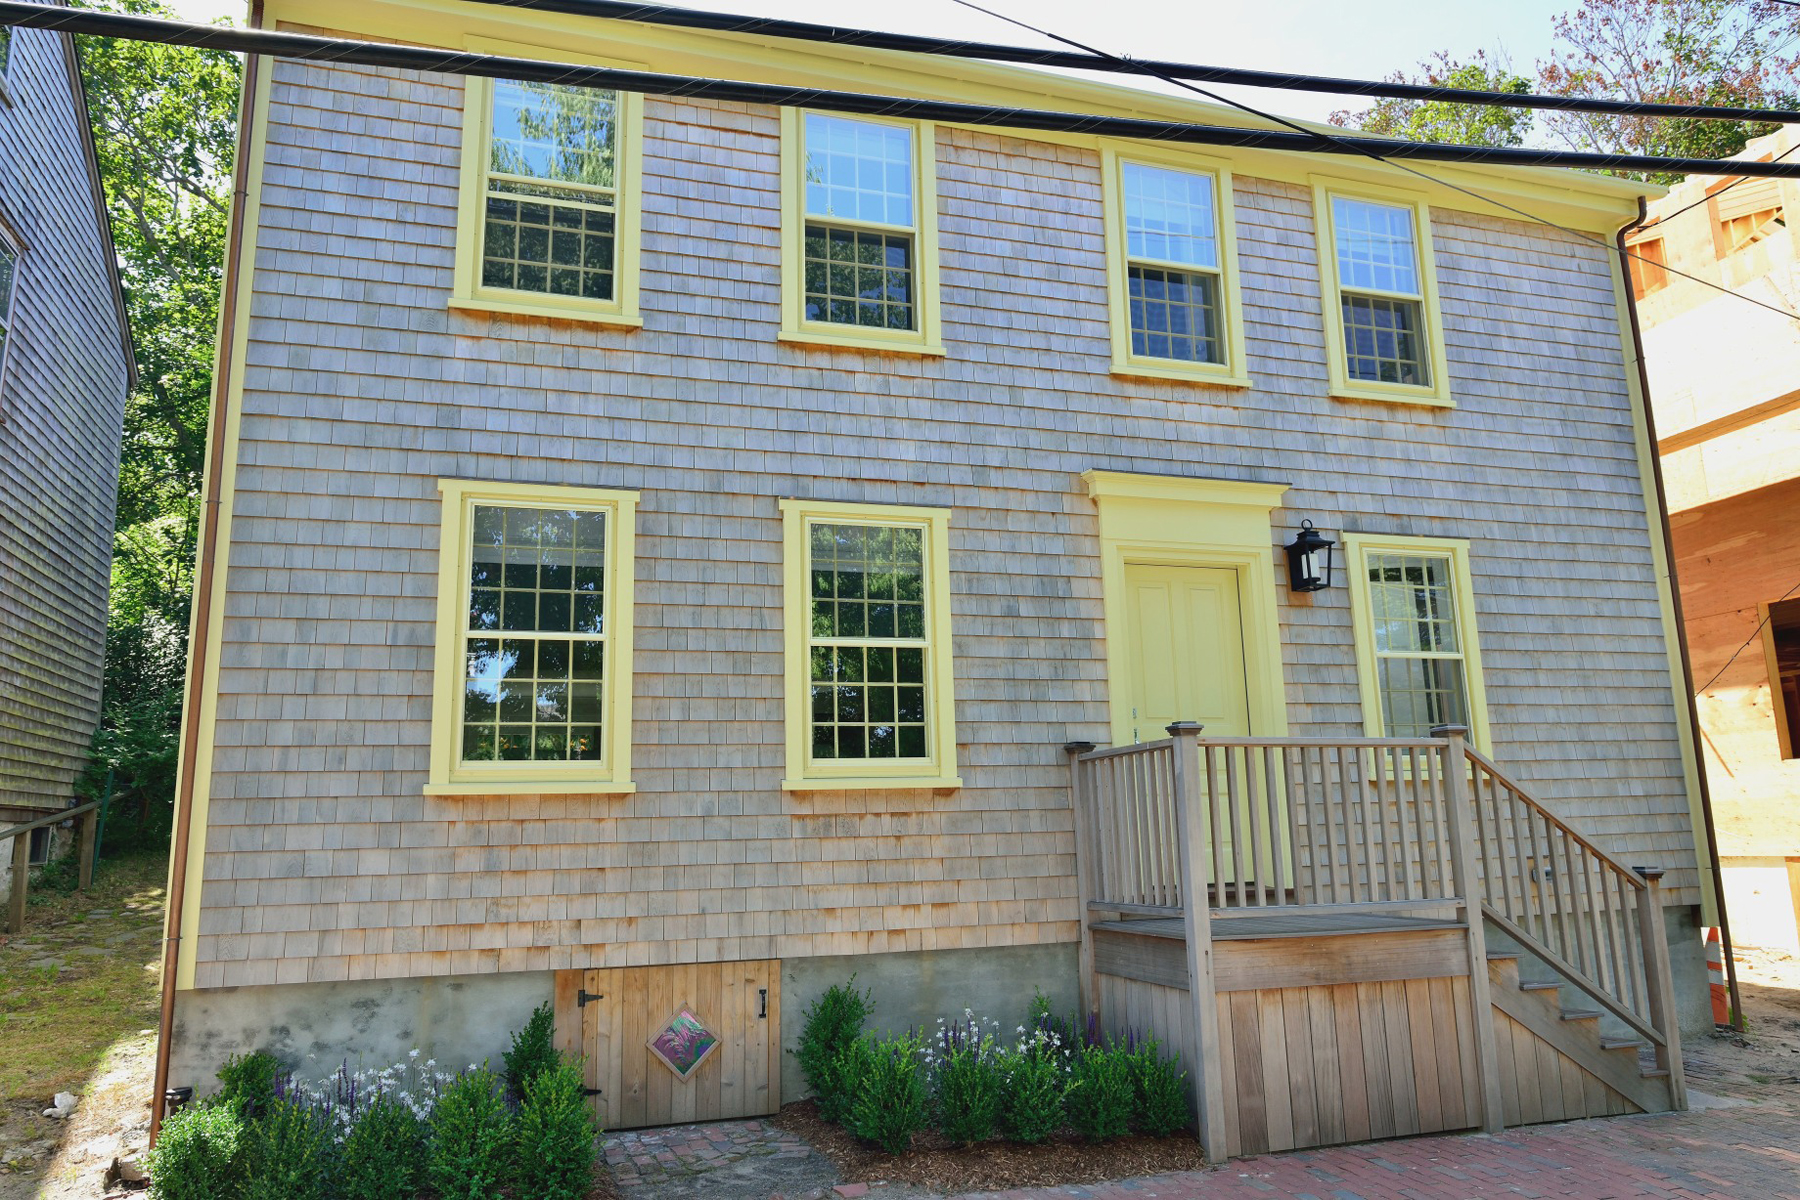 Single Family Home for Sale at Historic Nantucket Four Bay Home 11 Union Street Nantucket, Massachusetts, 02554 United States